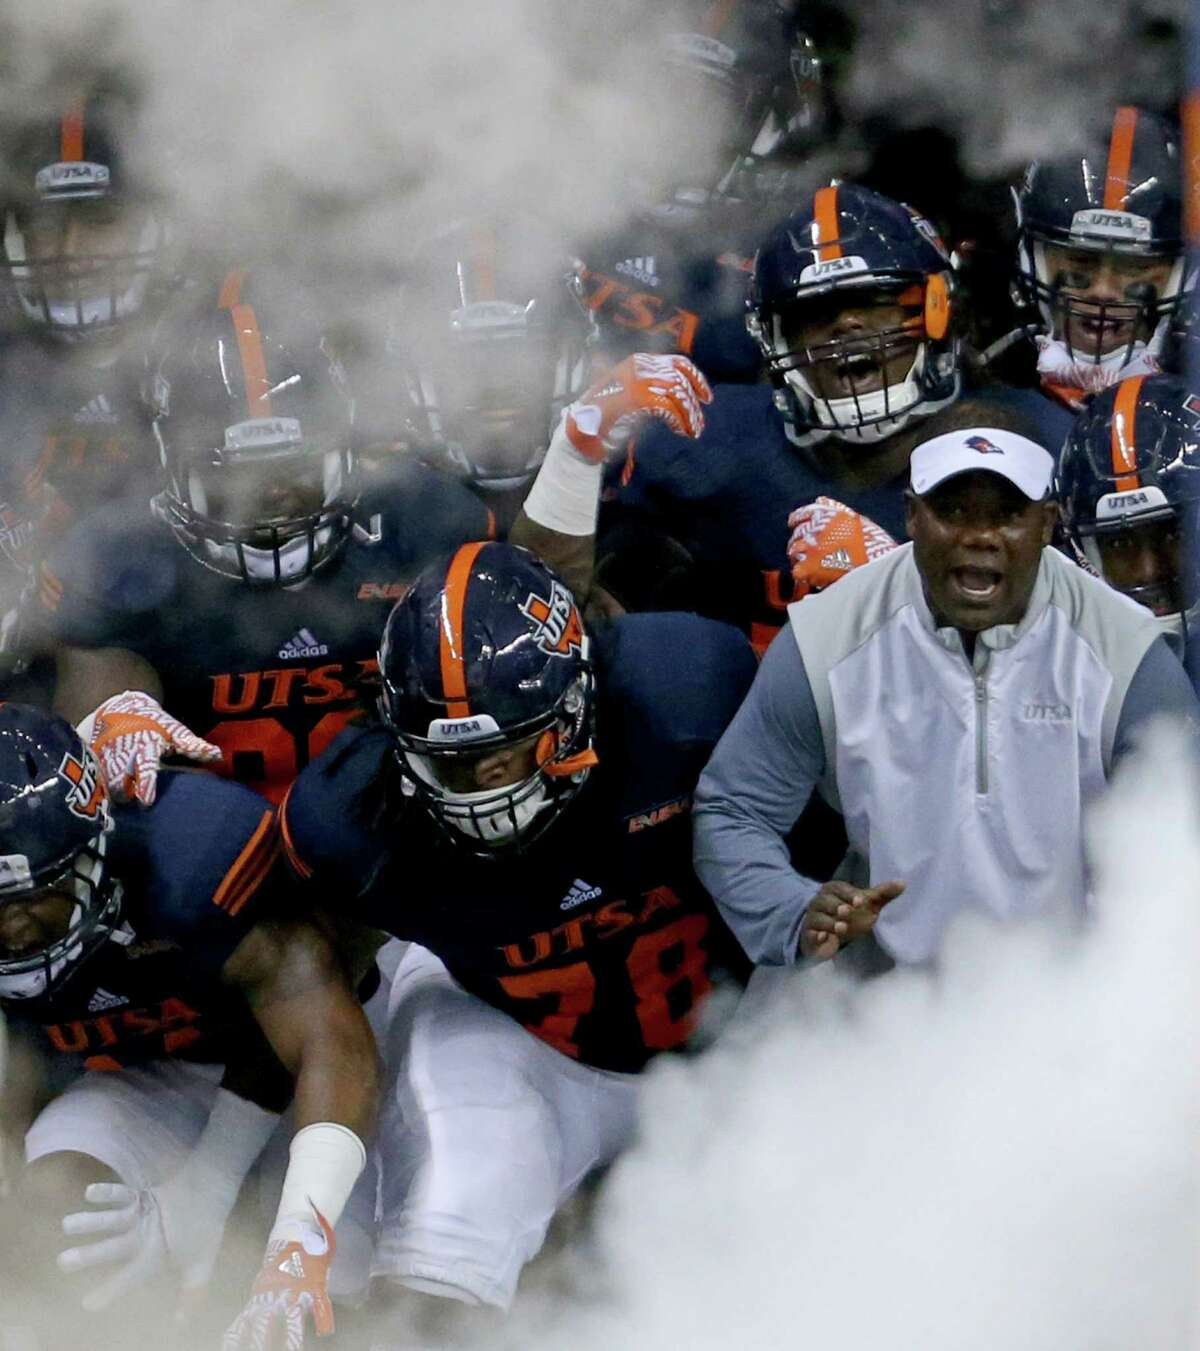 If Texas A&M harbors any hope of playing in a major bowl, the Aggies can't afford to slip up against UTSA. Roadrunners coach Frank Wilson, right, said his team is fired up to play the No. 25 Aggies on national television.